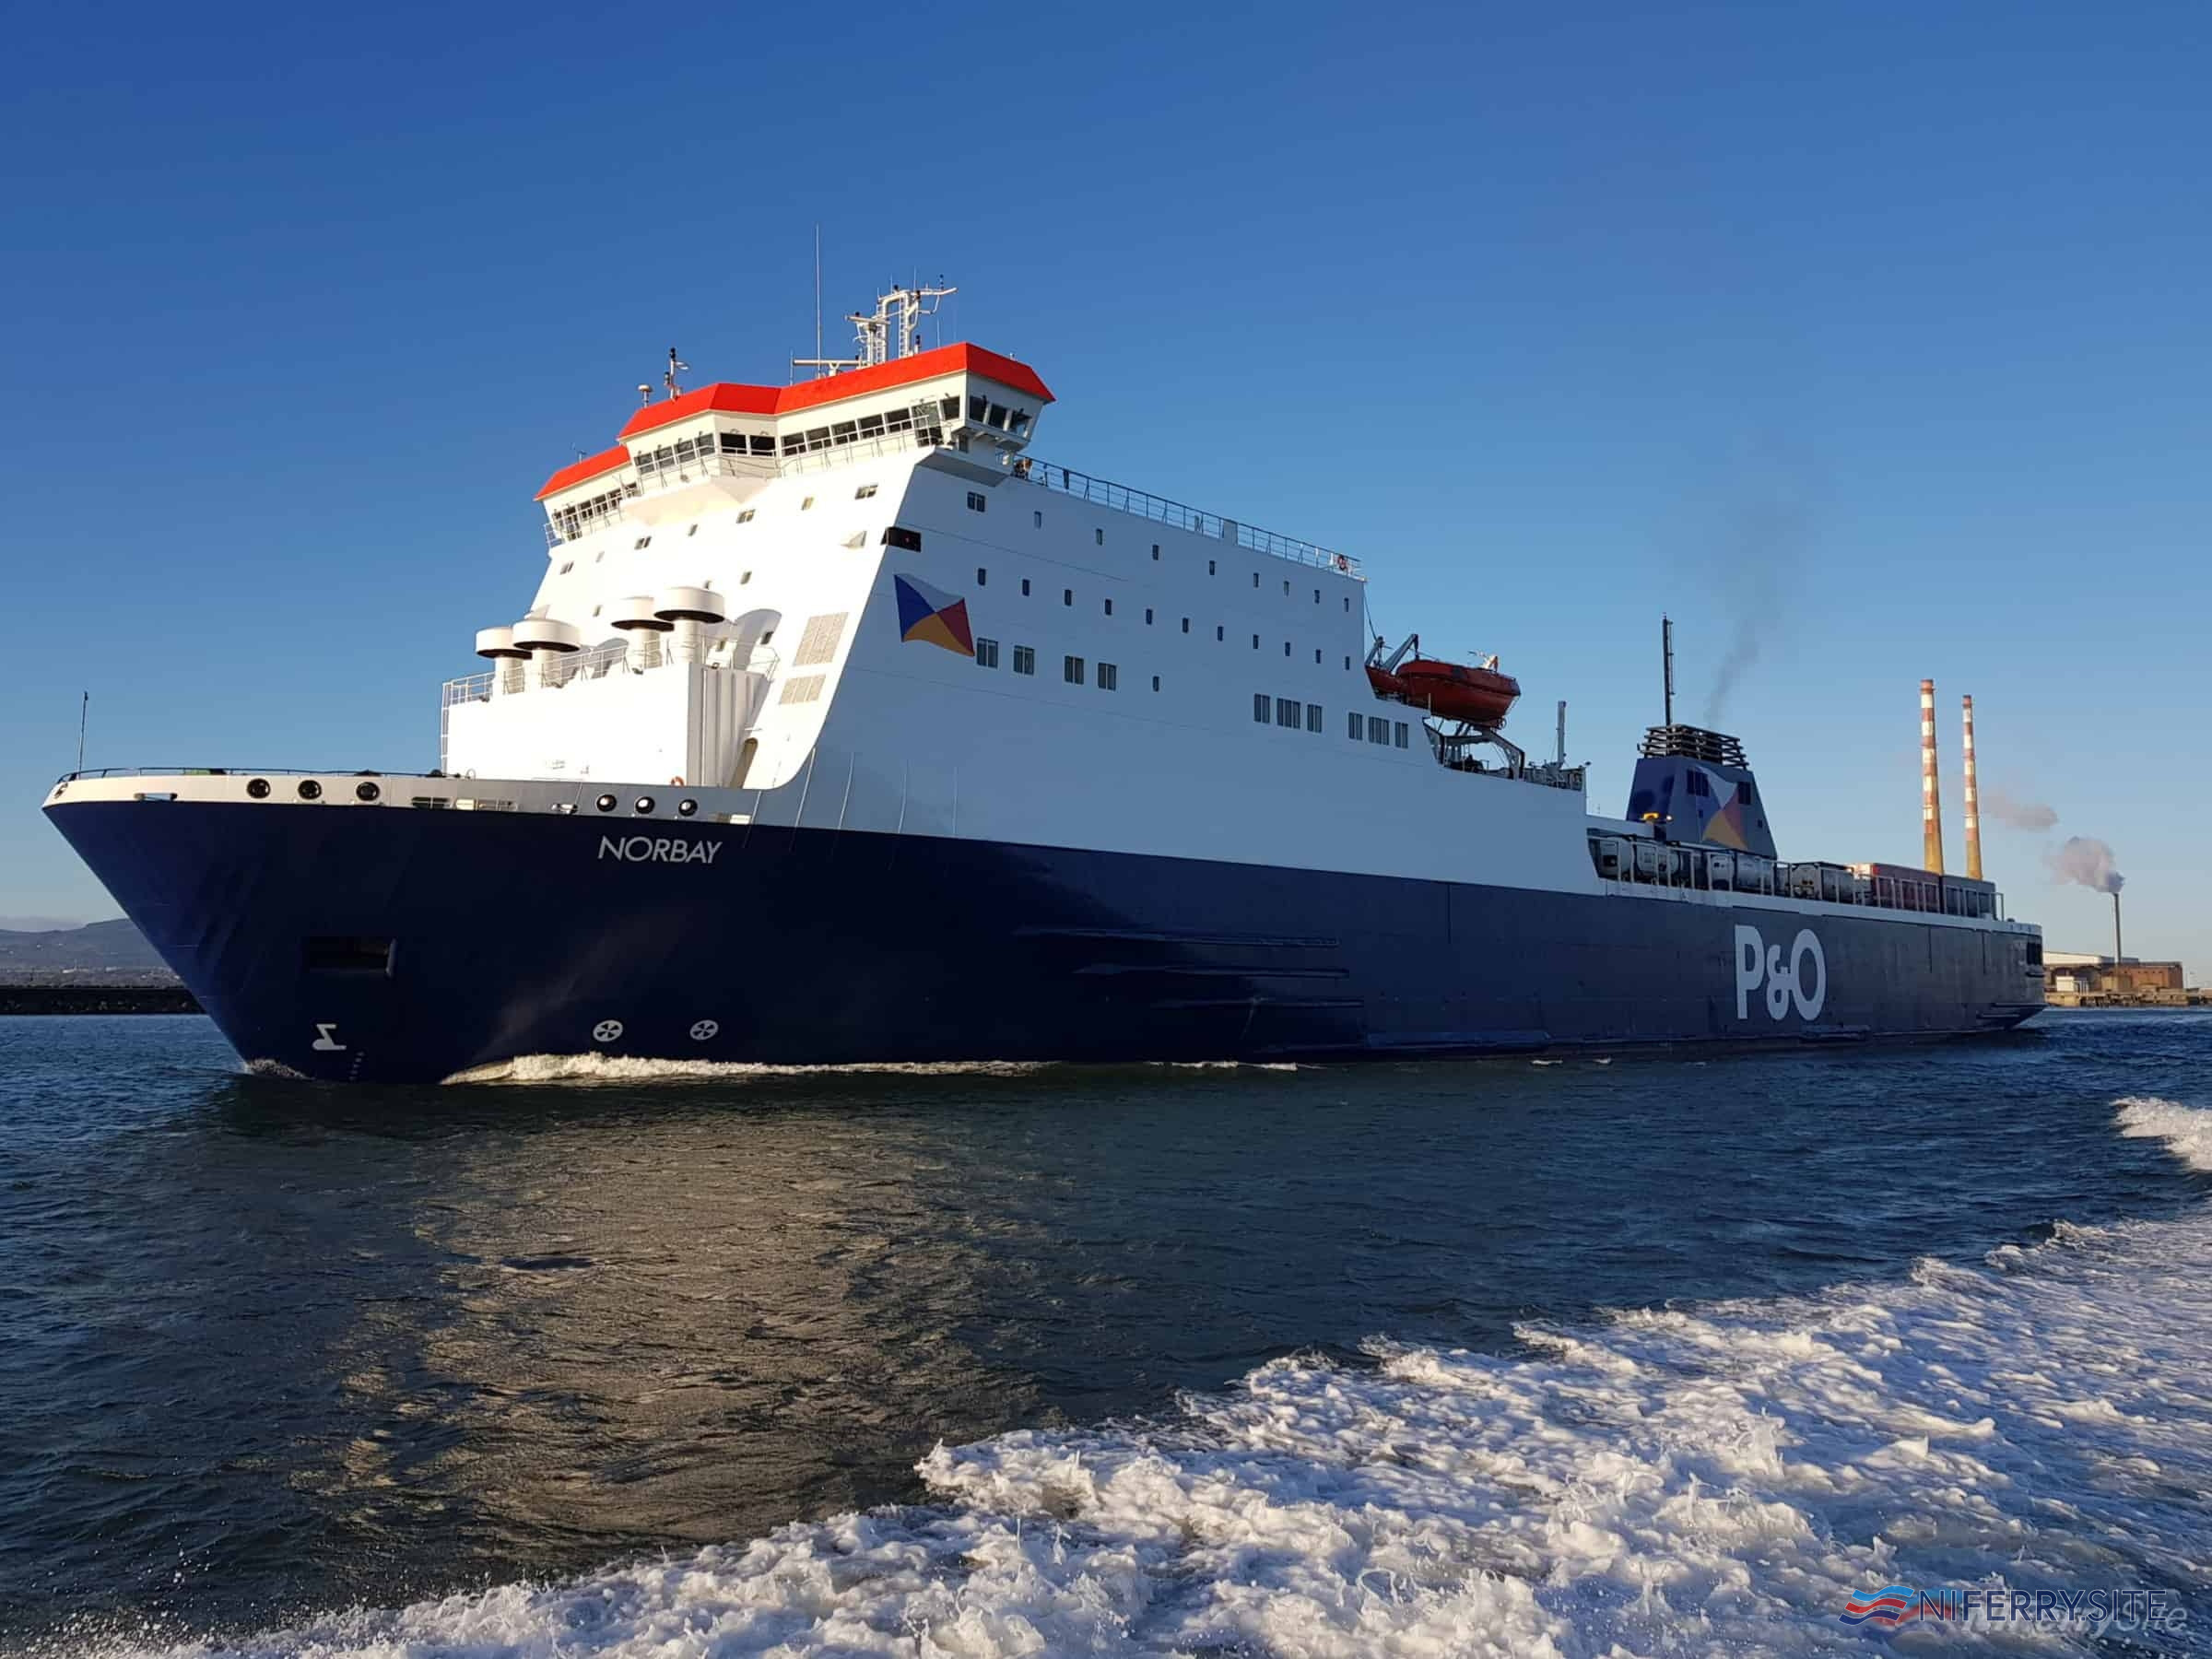 P&O Ferries NORBAY leaves Dublin for Liverpool on her first sailing following a three-week absence for dry docking in Poland, 24.03.19. Copyright © Robbie Cox.